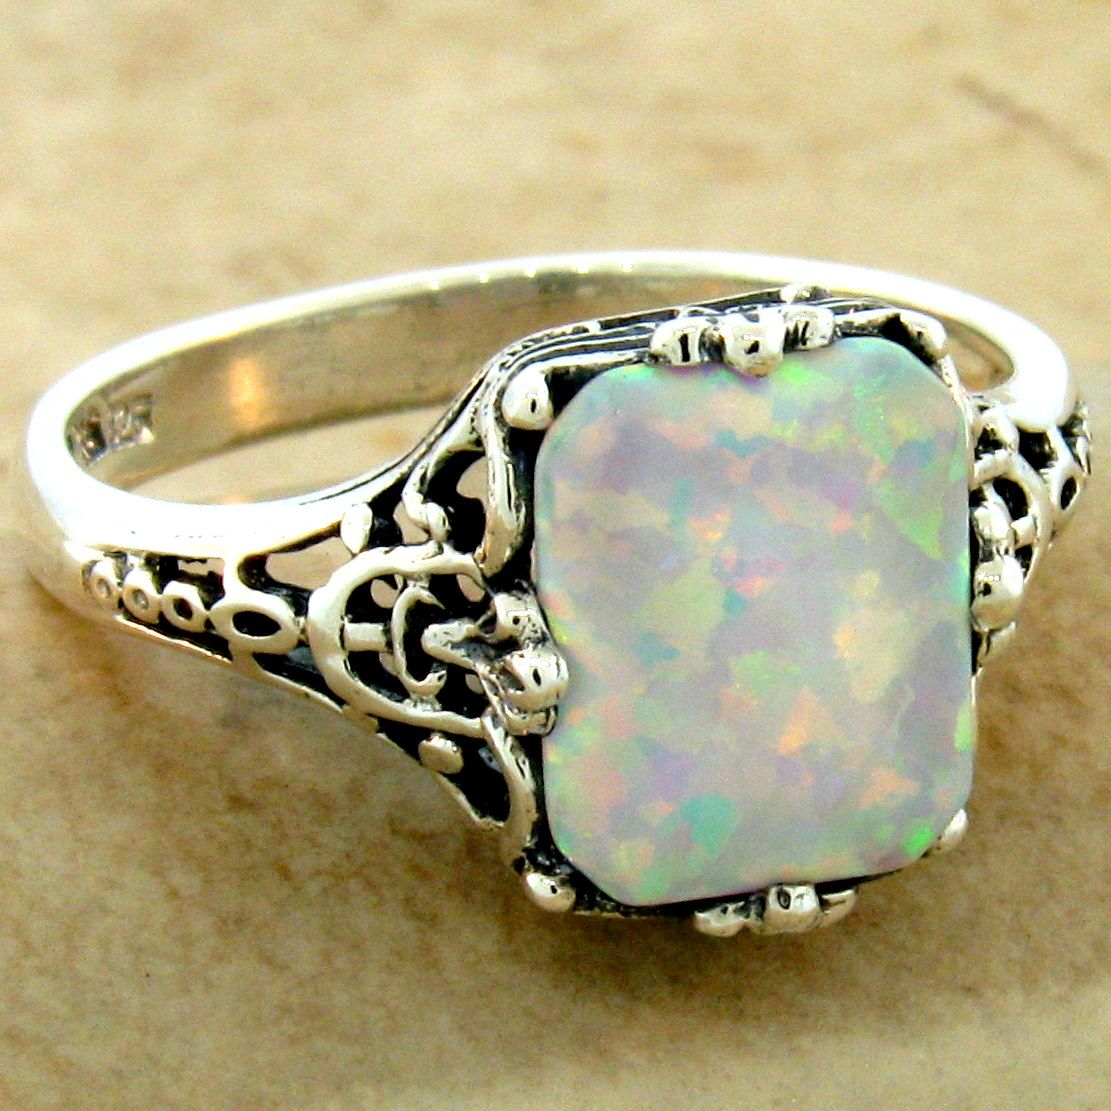 7.25 8.25 7.75 Natural 1ct Aquamarine 925 Solid Sterling Silver Ring Size 7 8